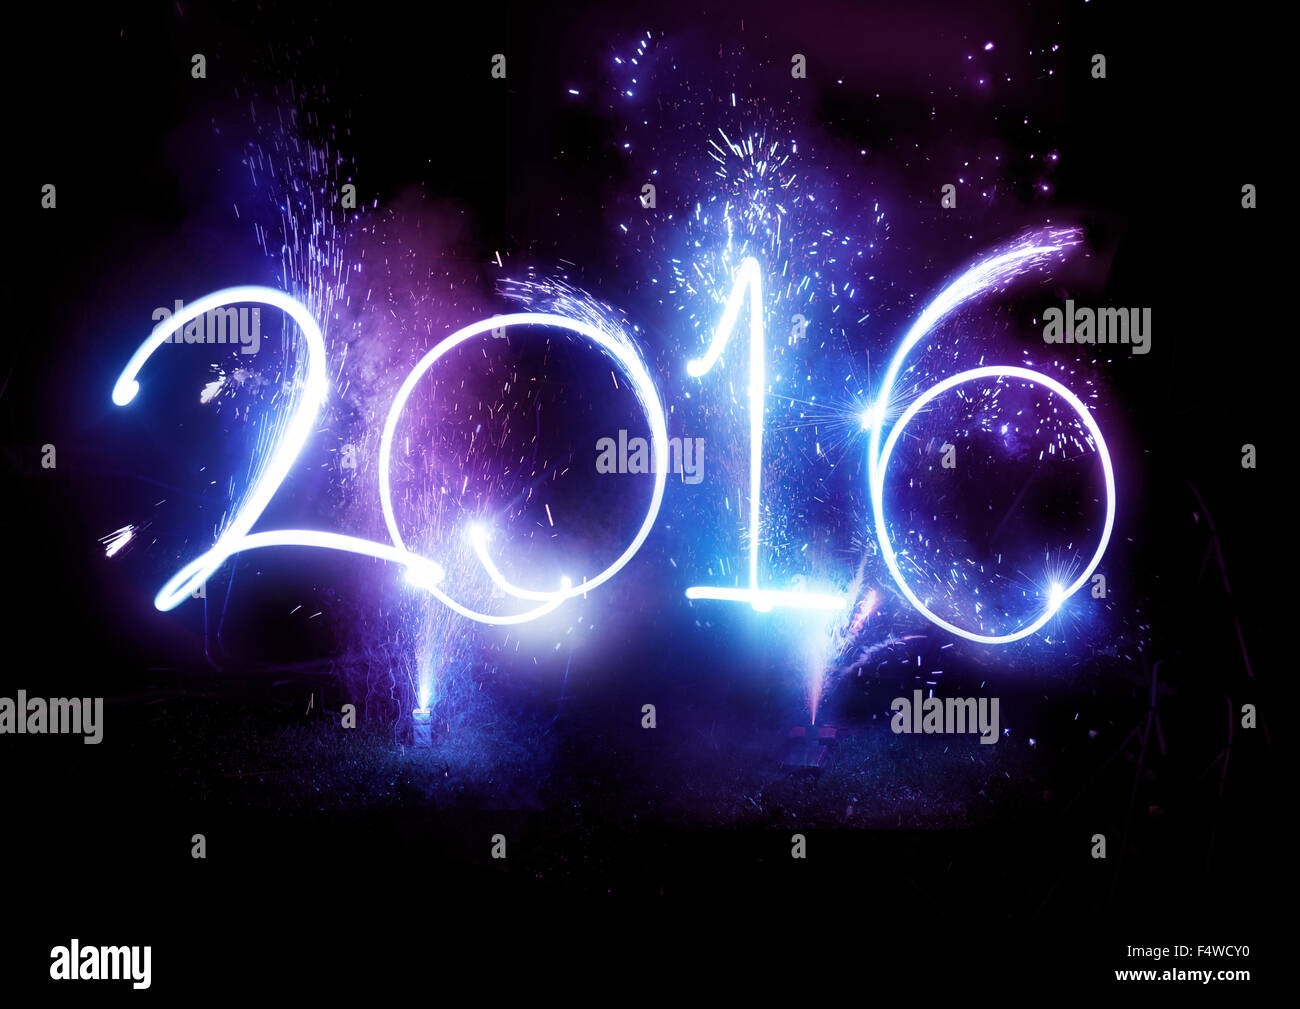 2016 Fireworks party -  Happy New Year Display celebrations!2016 written in lights trails and fireworks. - Stock Image